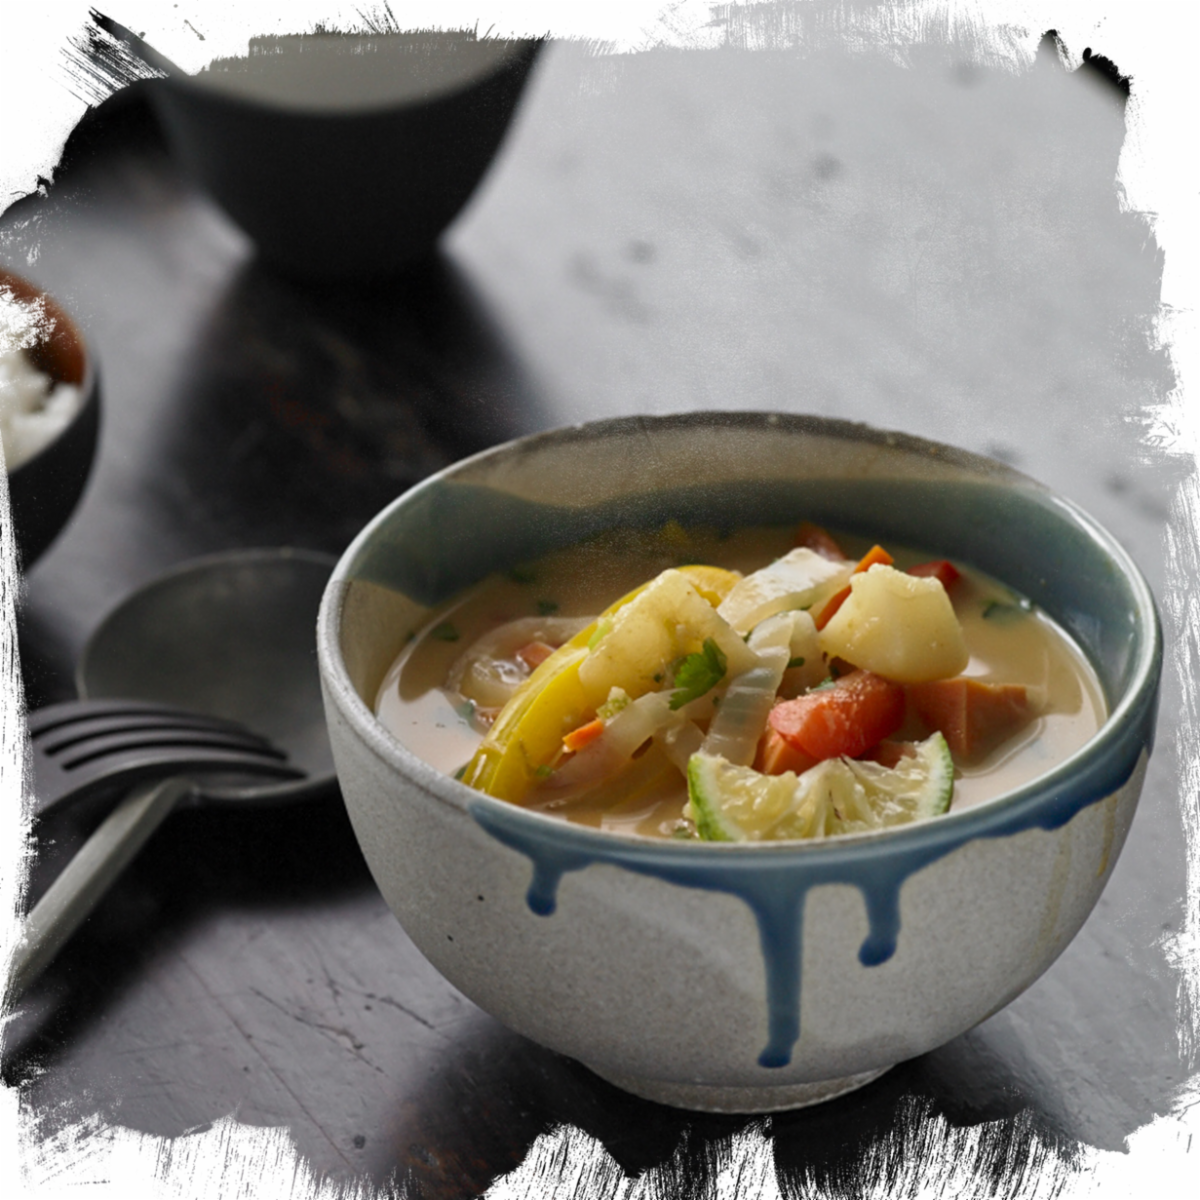 a bowl of thai curry with lime, pears and potatoes in a white bowl with blue accents